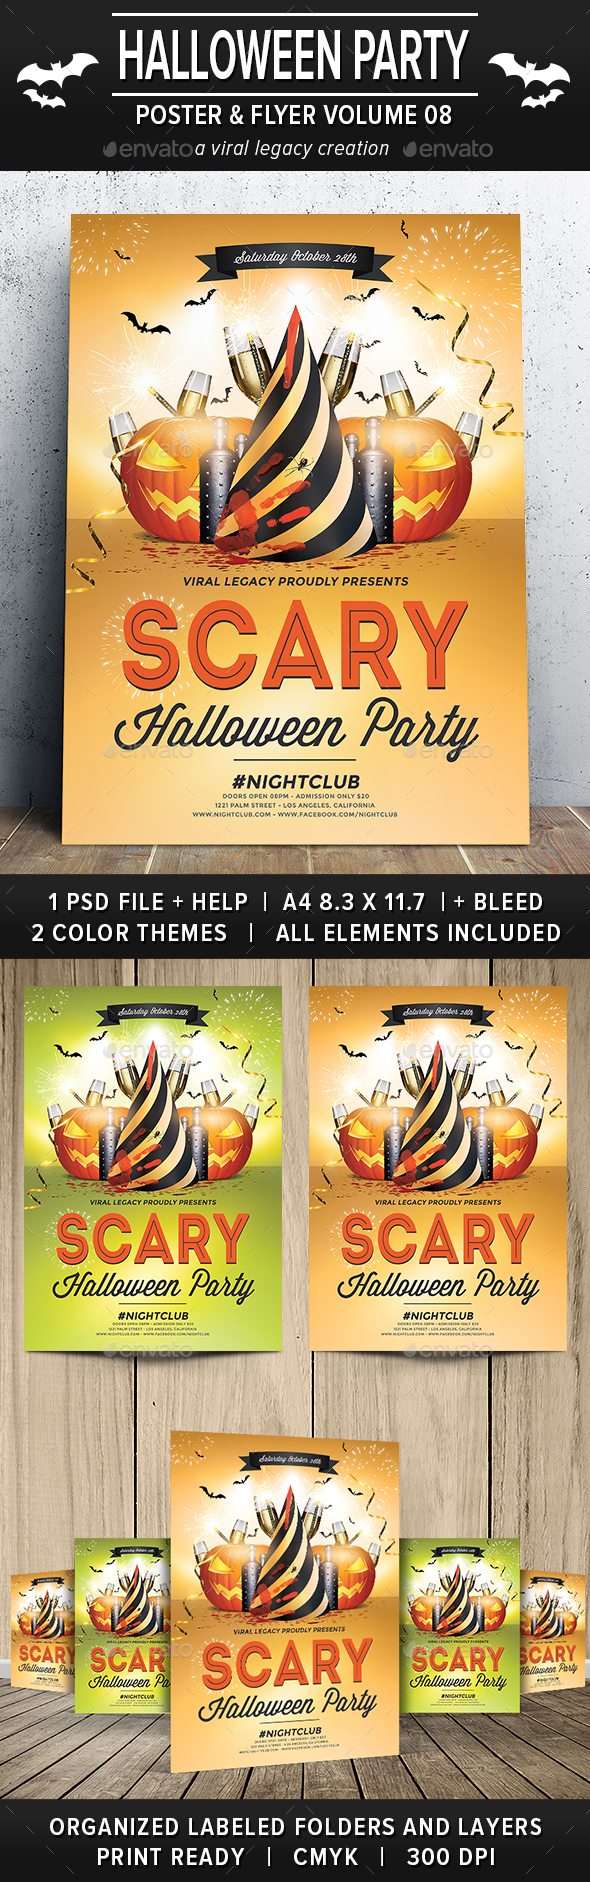 Halloween Party Poster / Flyer V08 - Flyers Print Templates